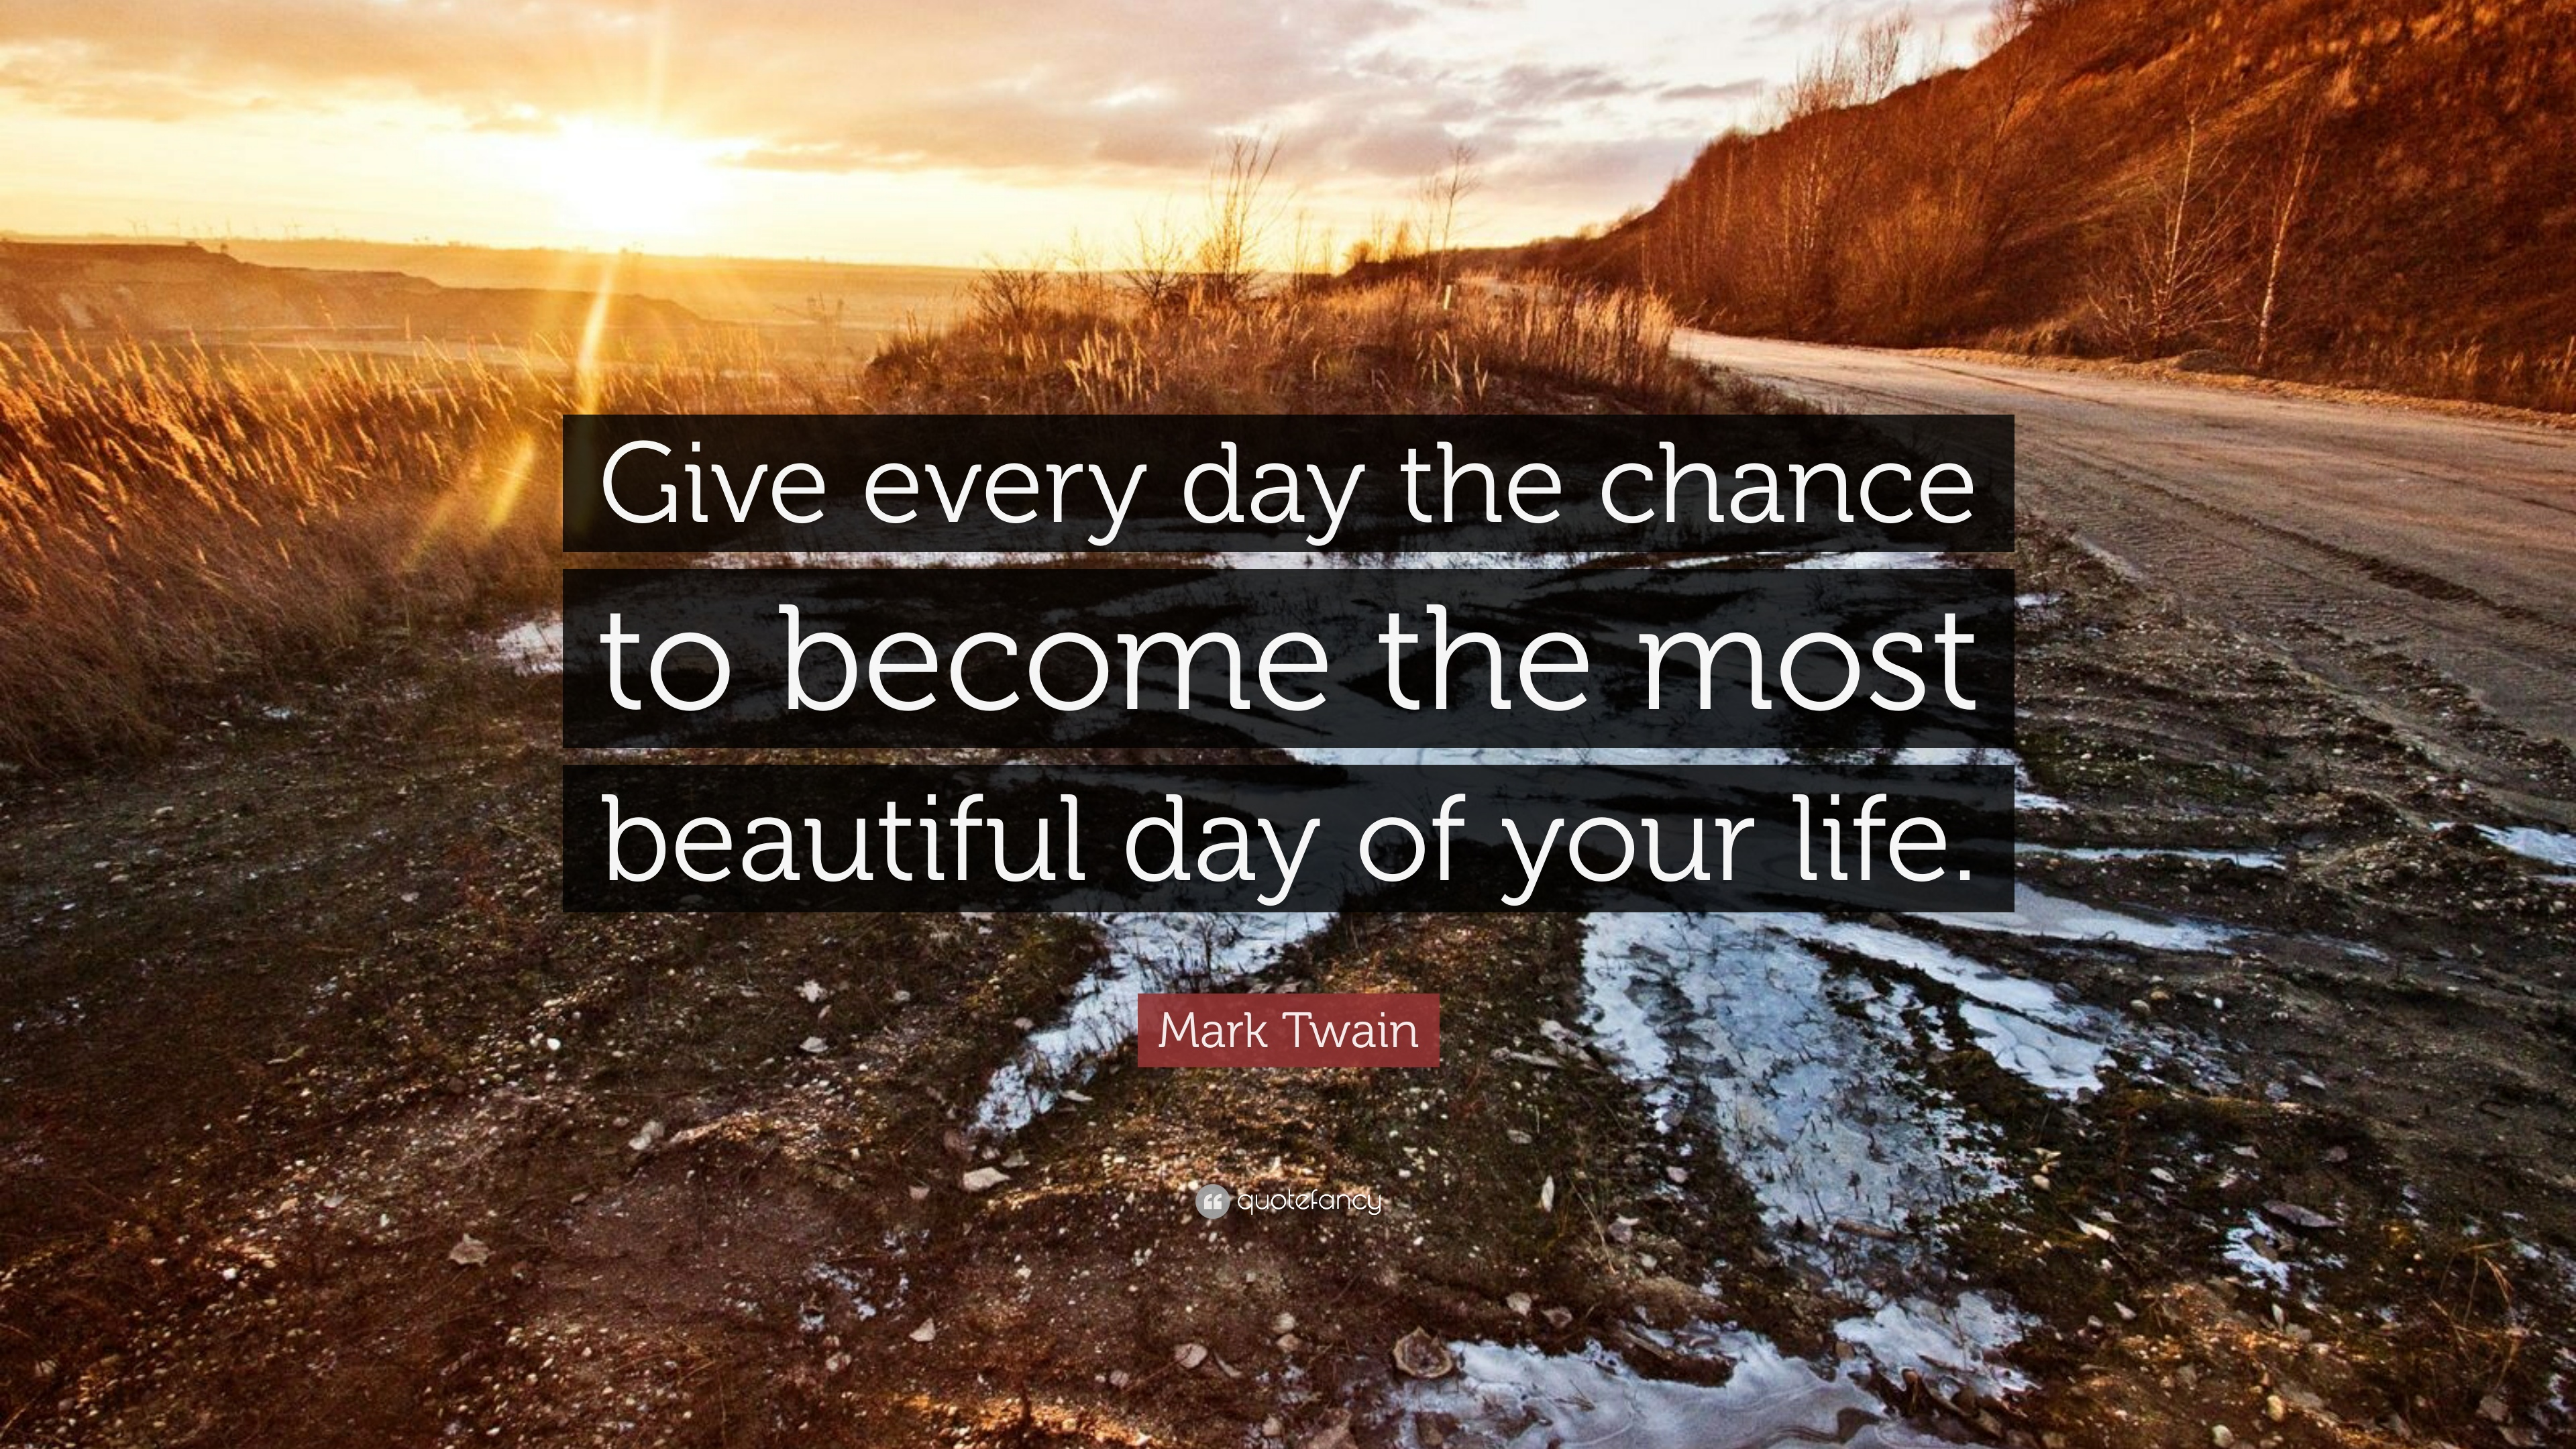 Mark Twain Quote Give Every Day The Chance To Become The Most